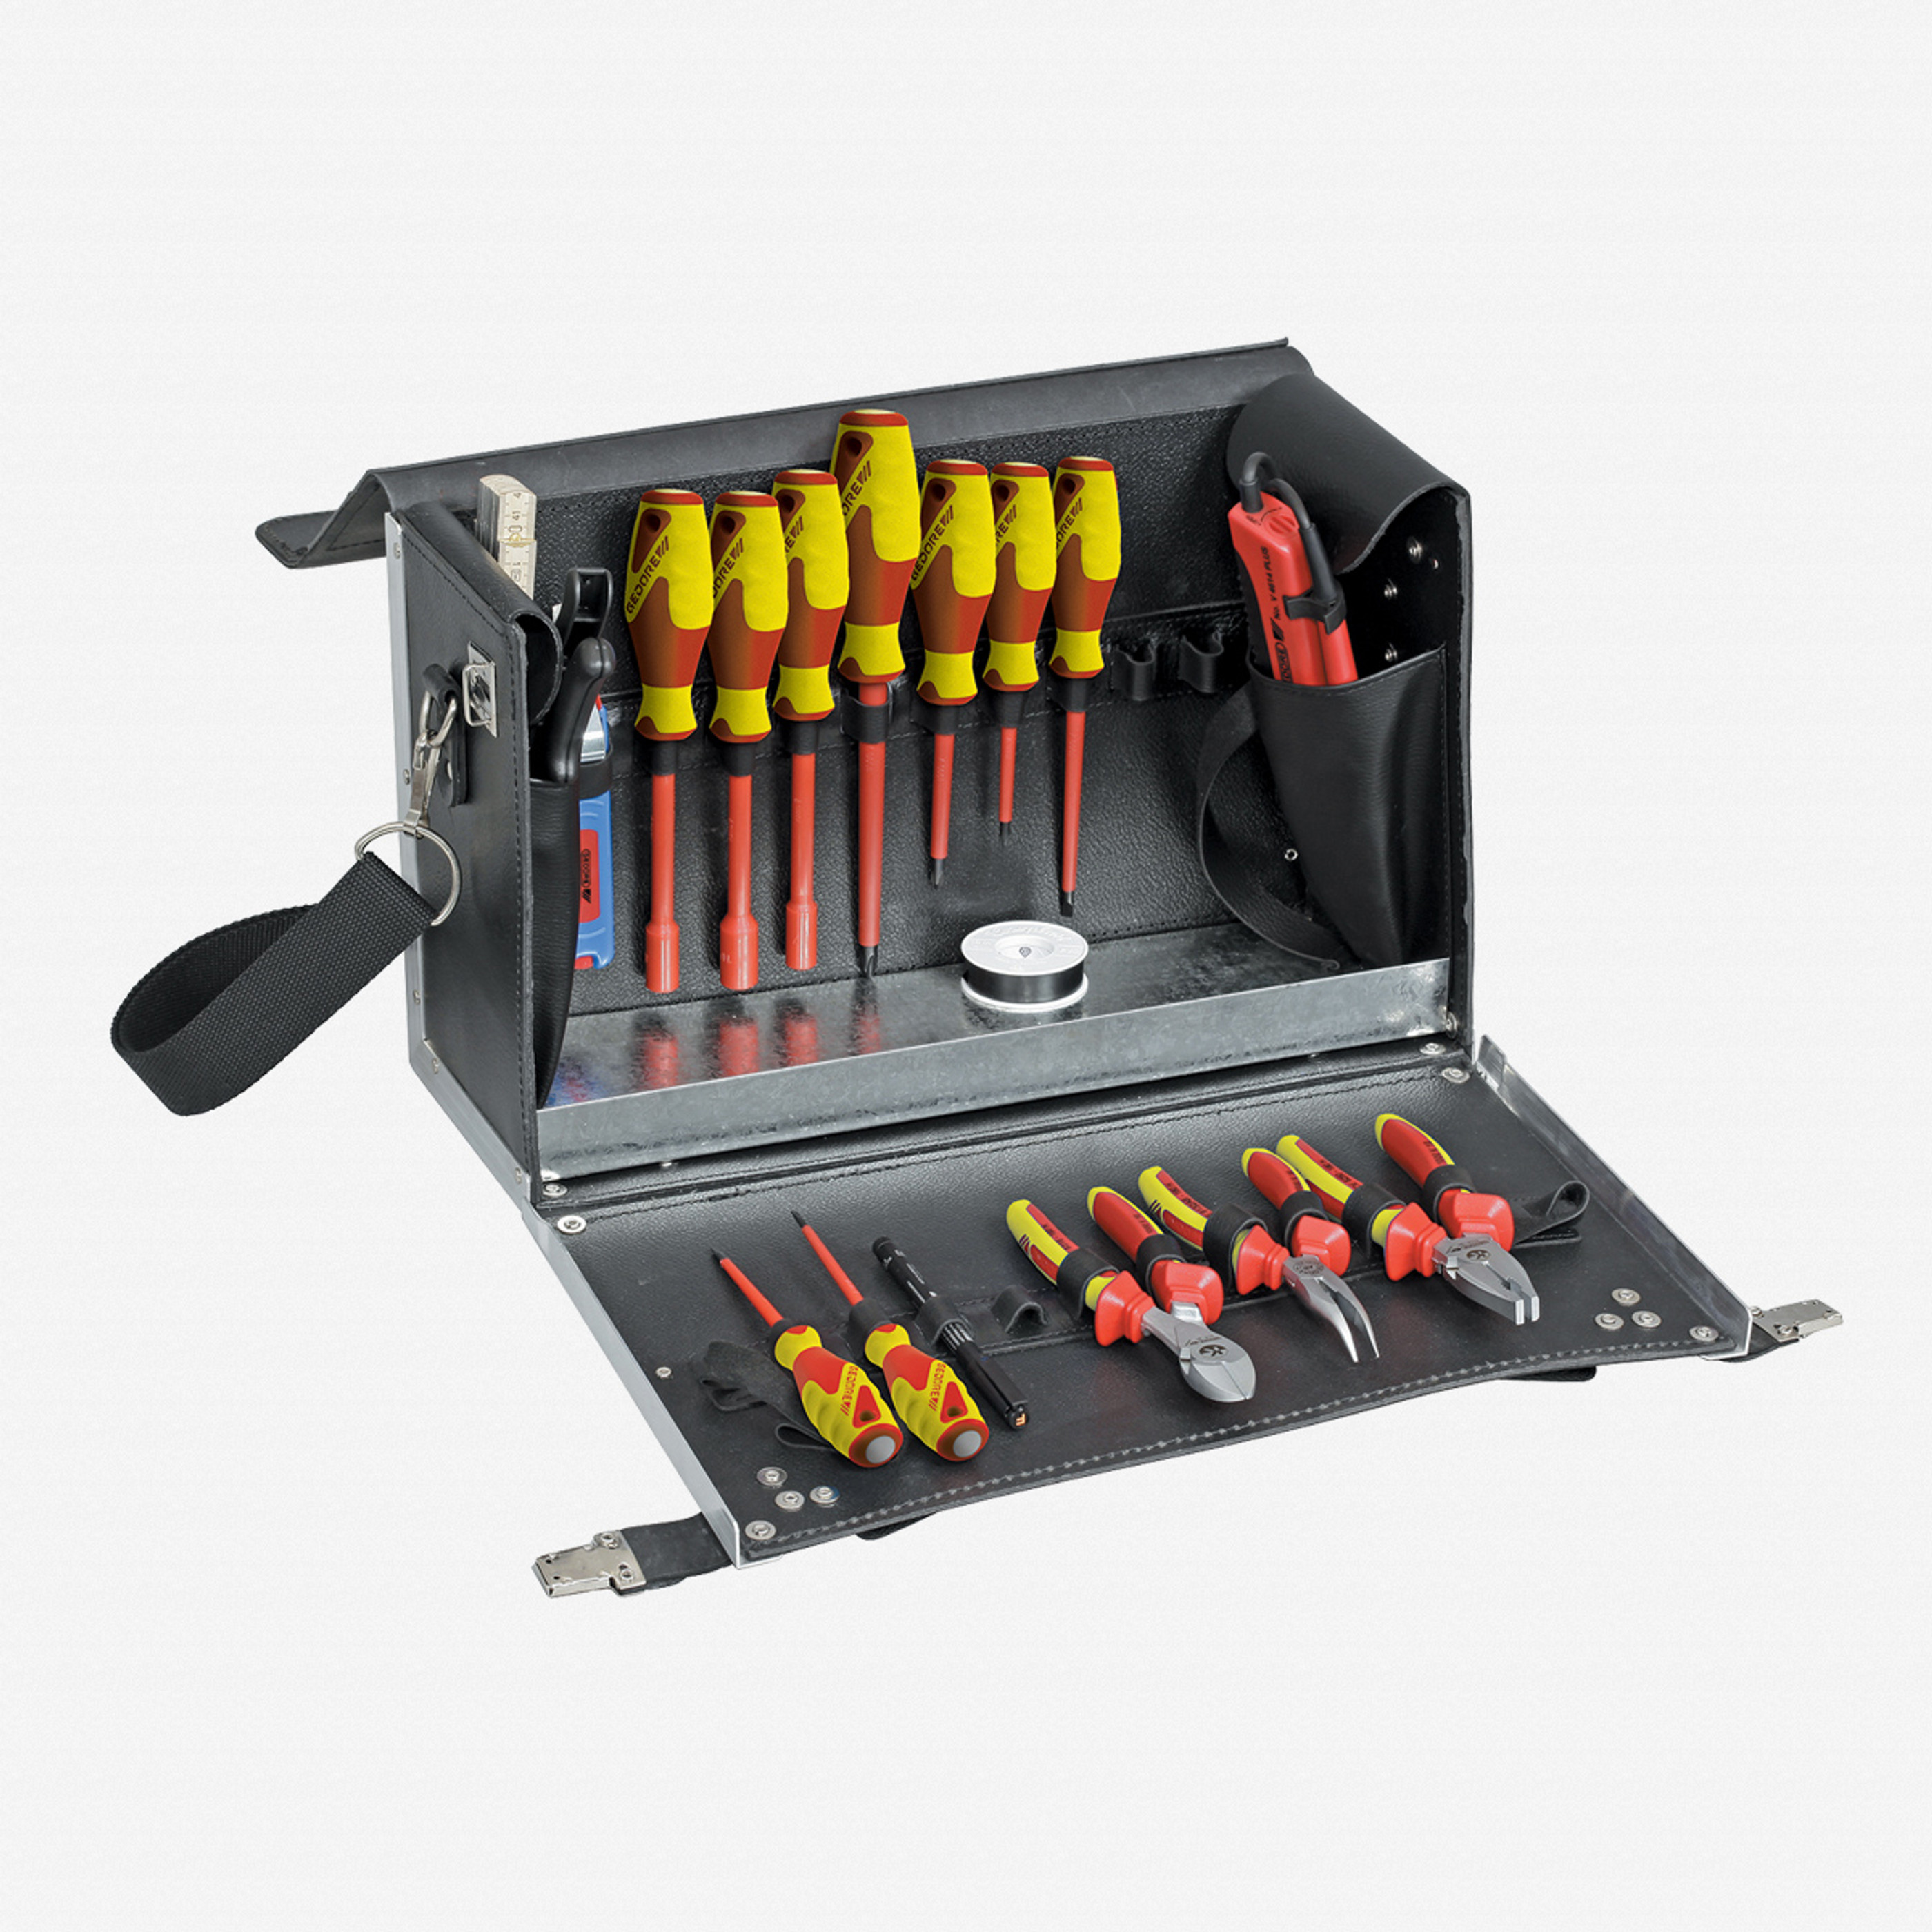 Gedore 1091 Electricians Tool Case 18 Pcs